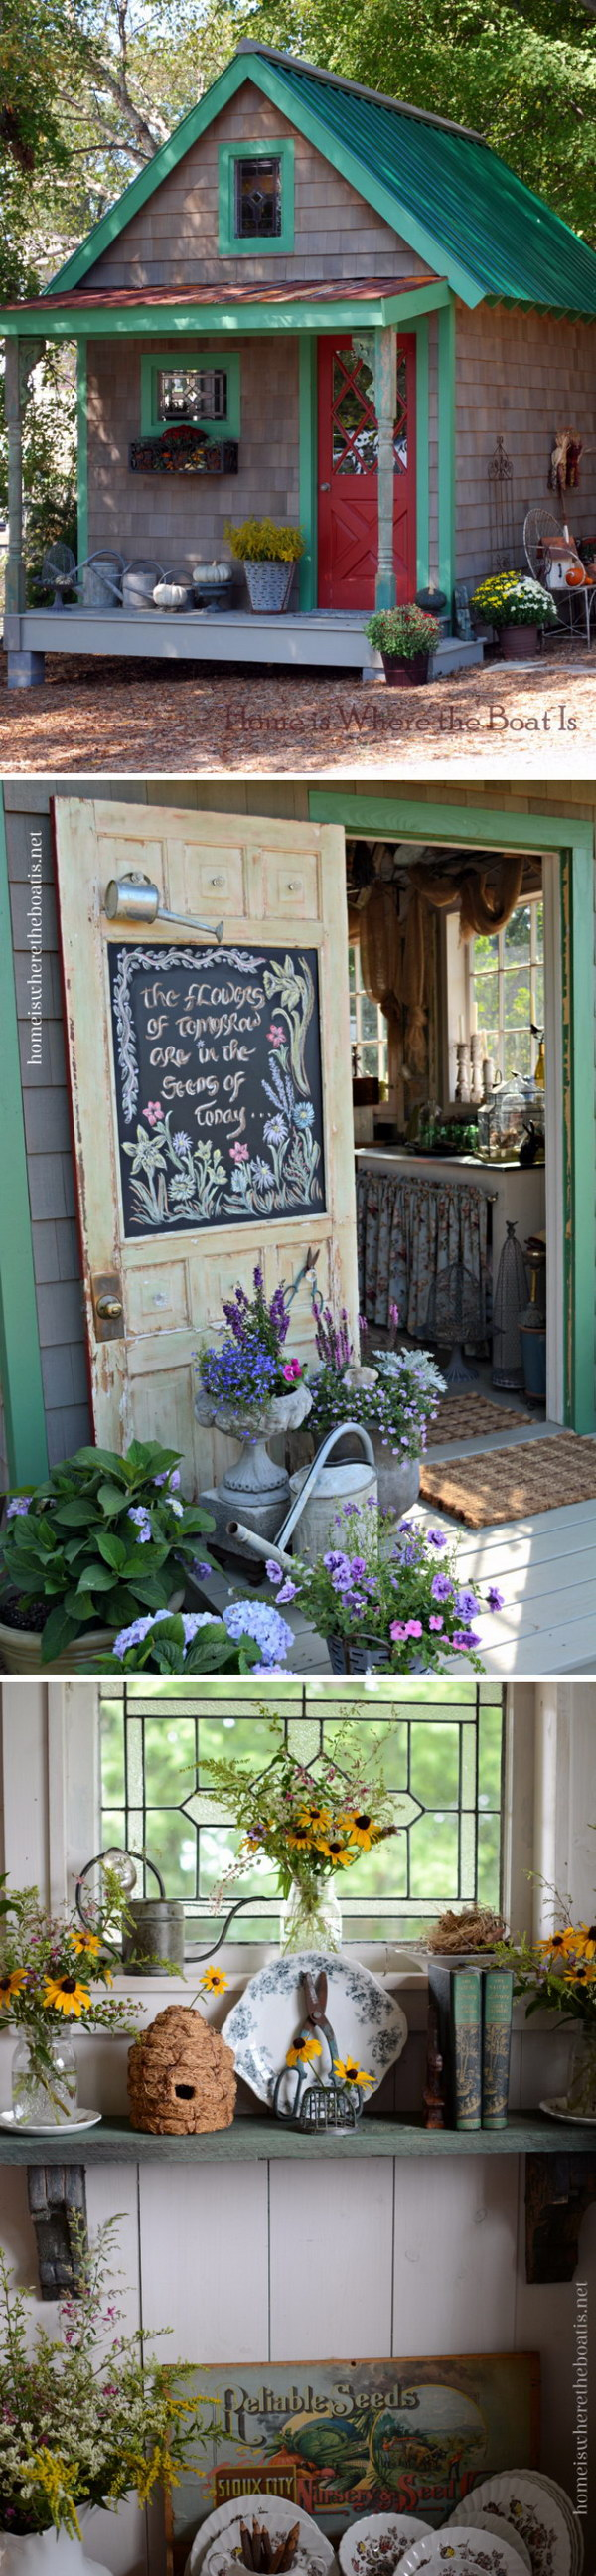 Spring Inspired Potting Shed.